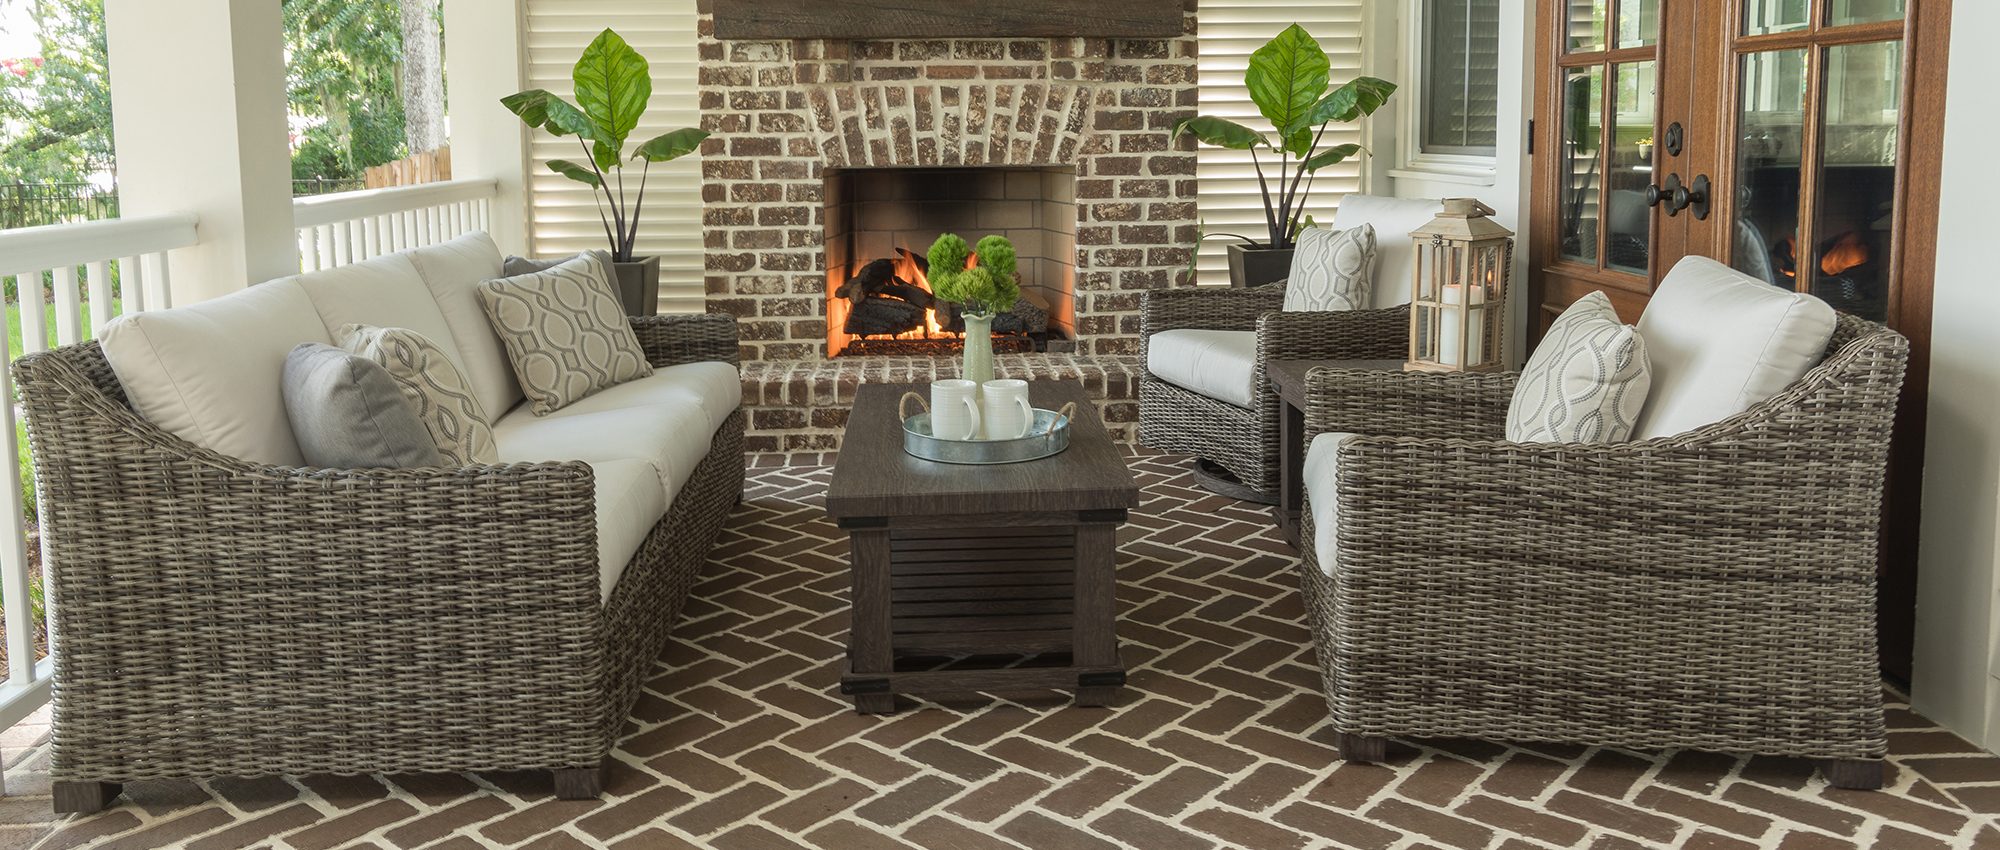 avallon-seating-hickory-2